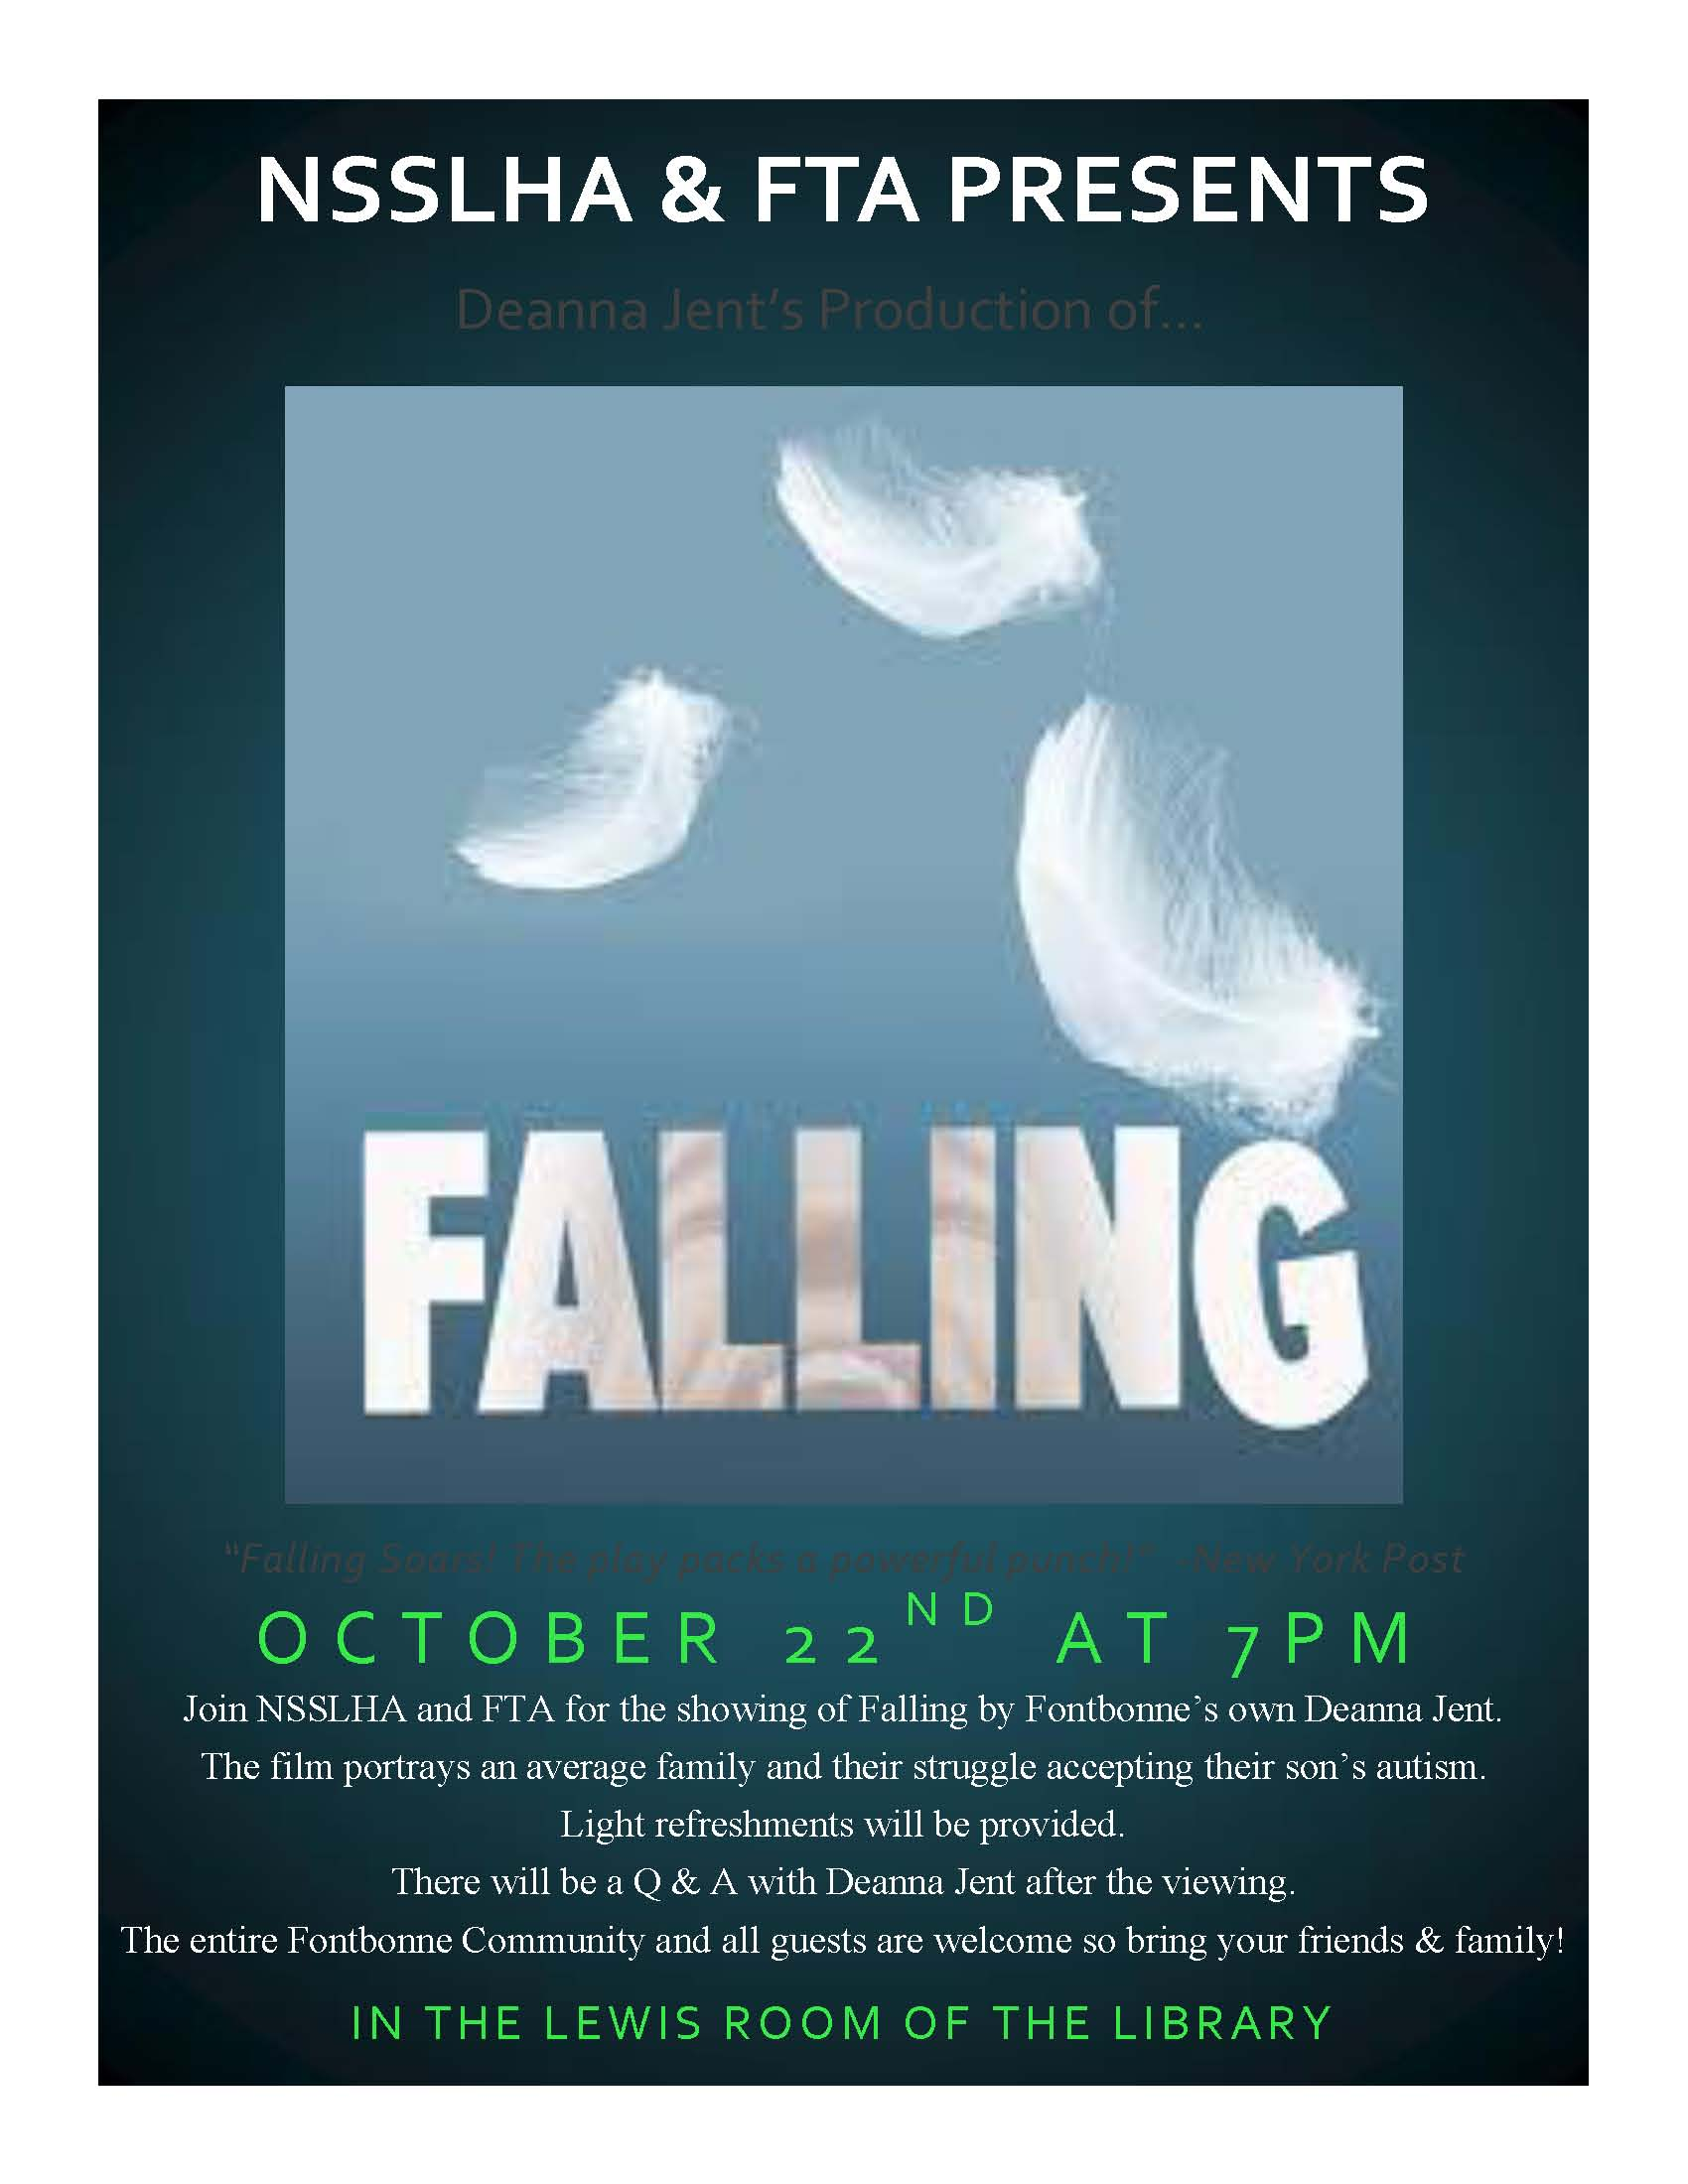 Falling DVD Screening